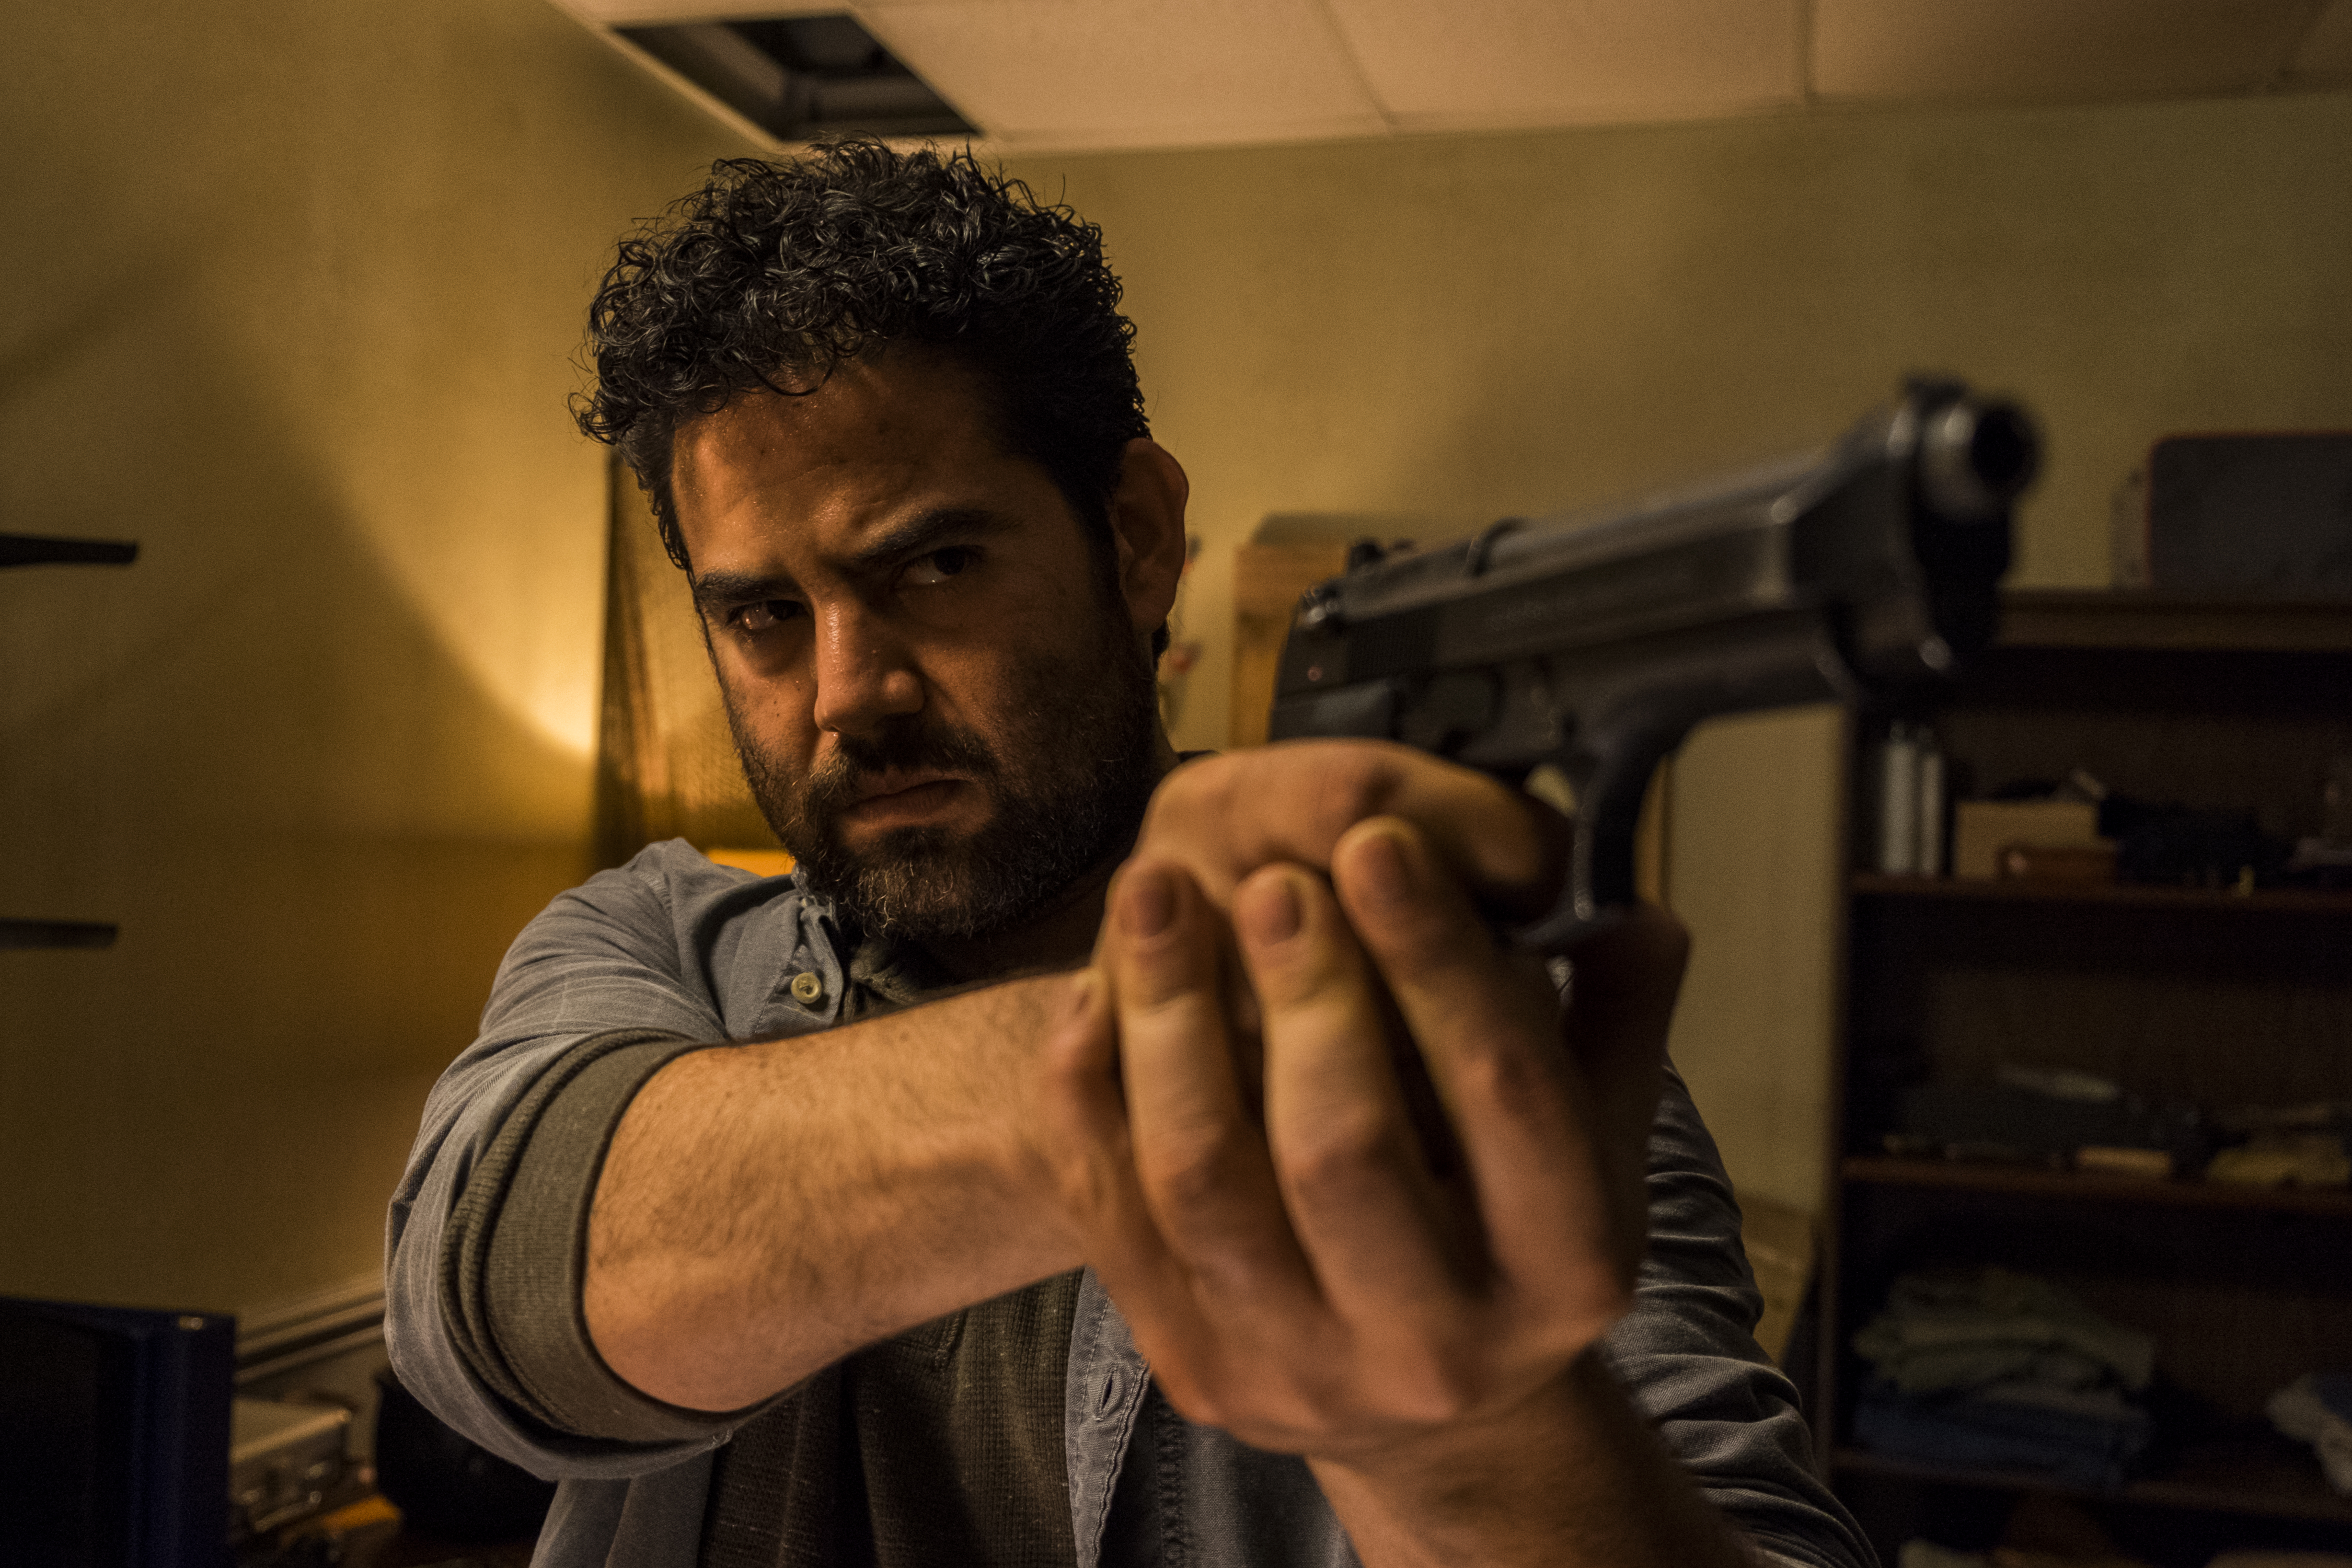 Morales (Juan Gabriel Pareja) - The Walking Dead Saison 8 Épisode 3 - Photo: Gene Page/AMC